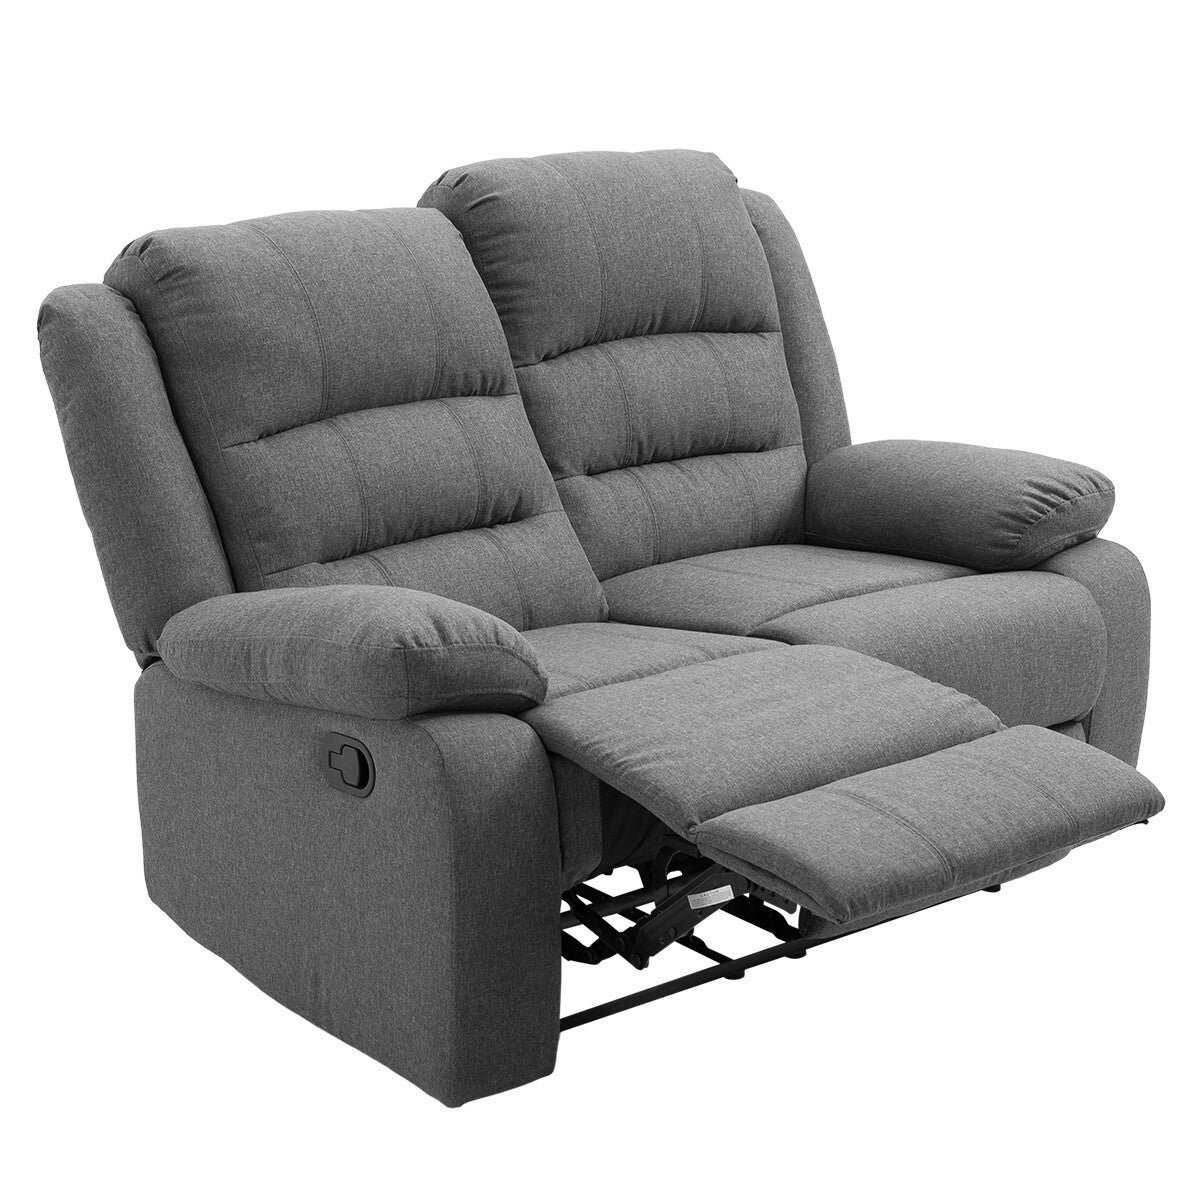 Soft Fabric Recliner Chair Sofa Lounge Armchair Grey Loveseat 2 Seater for Living Room Bedroom